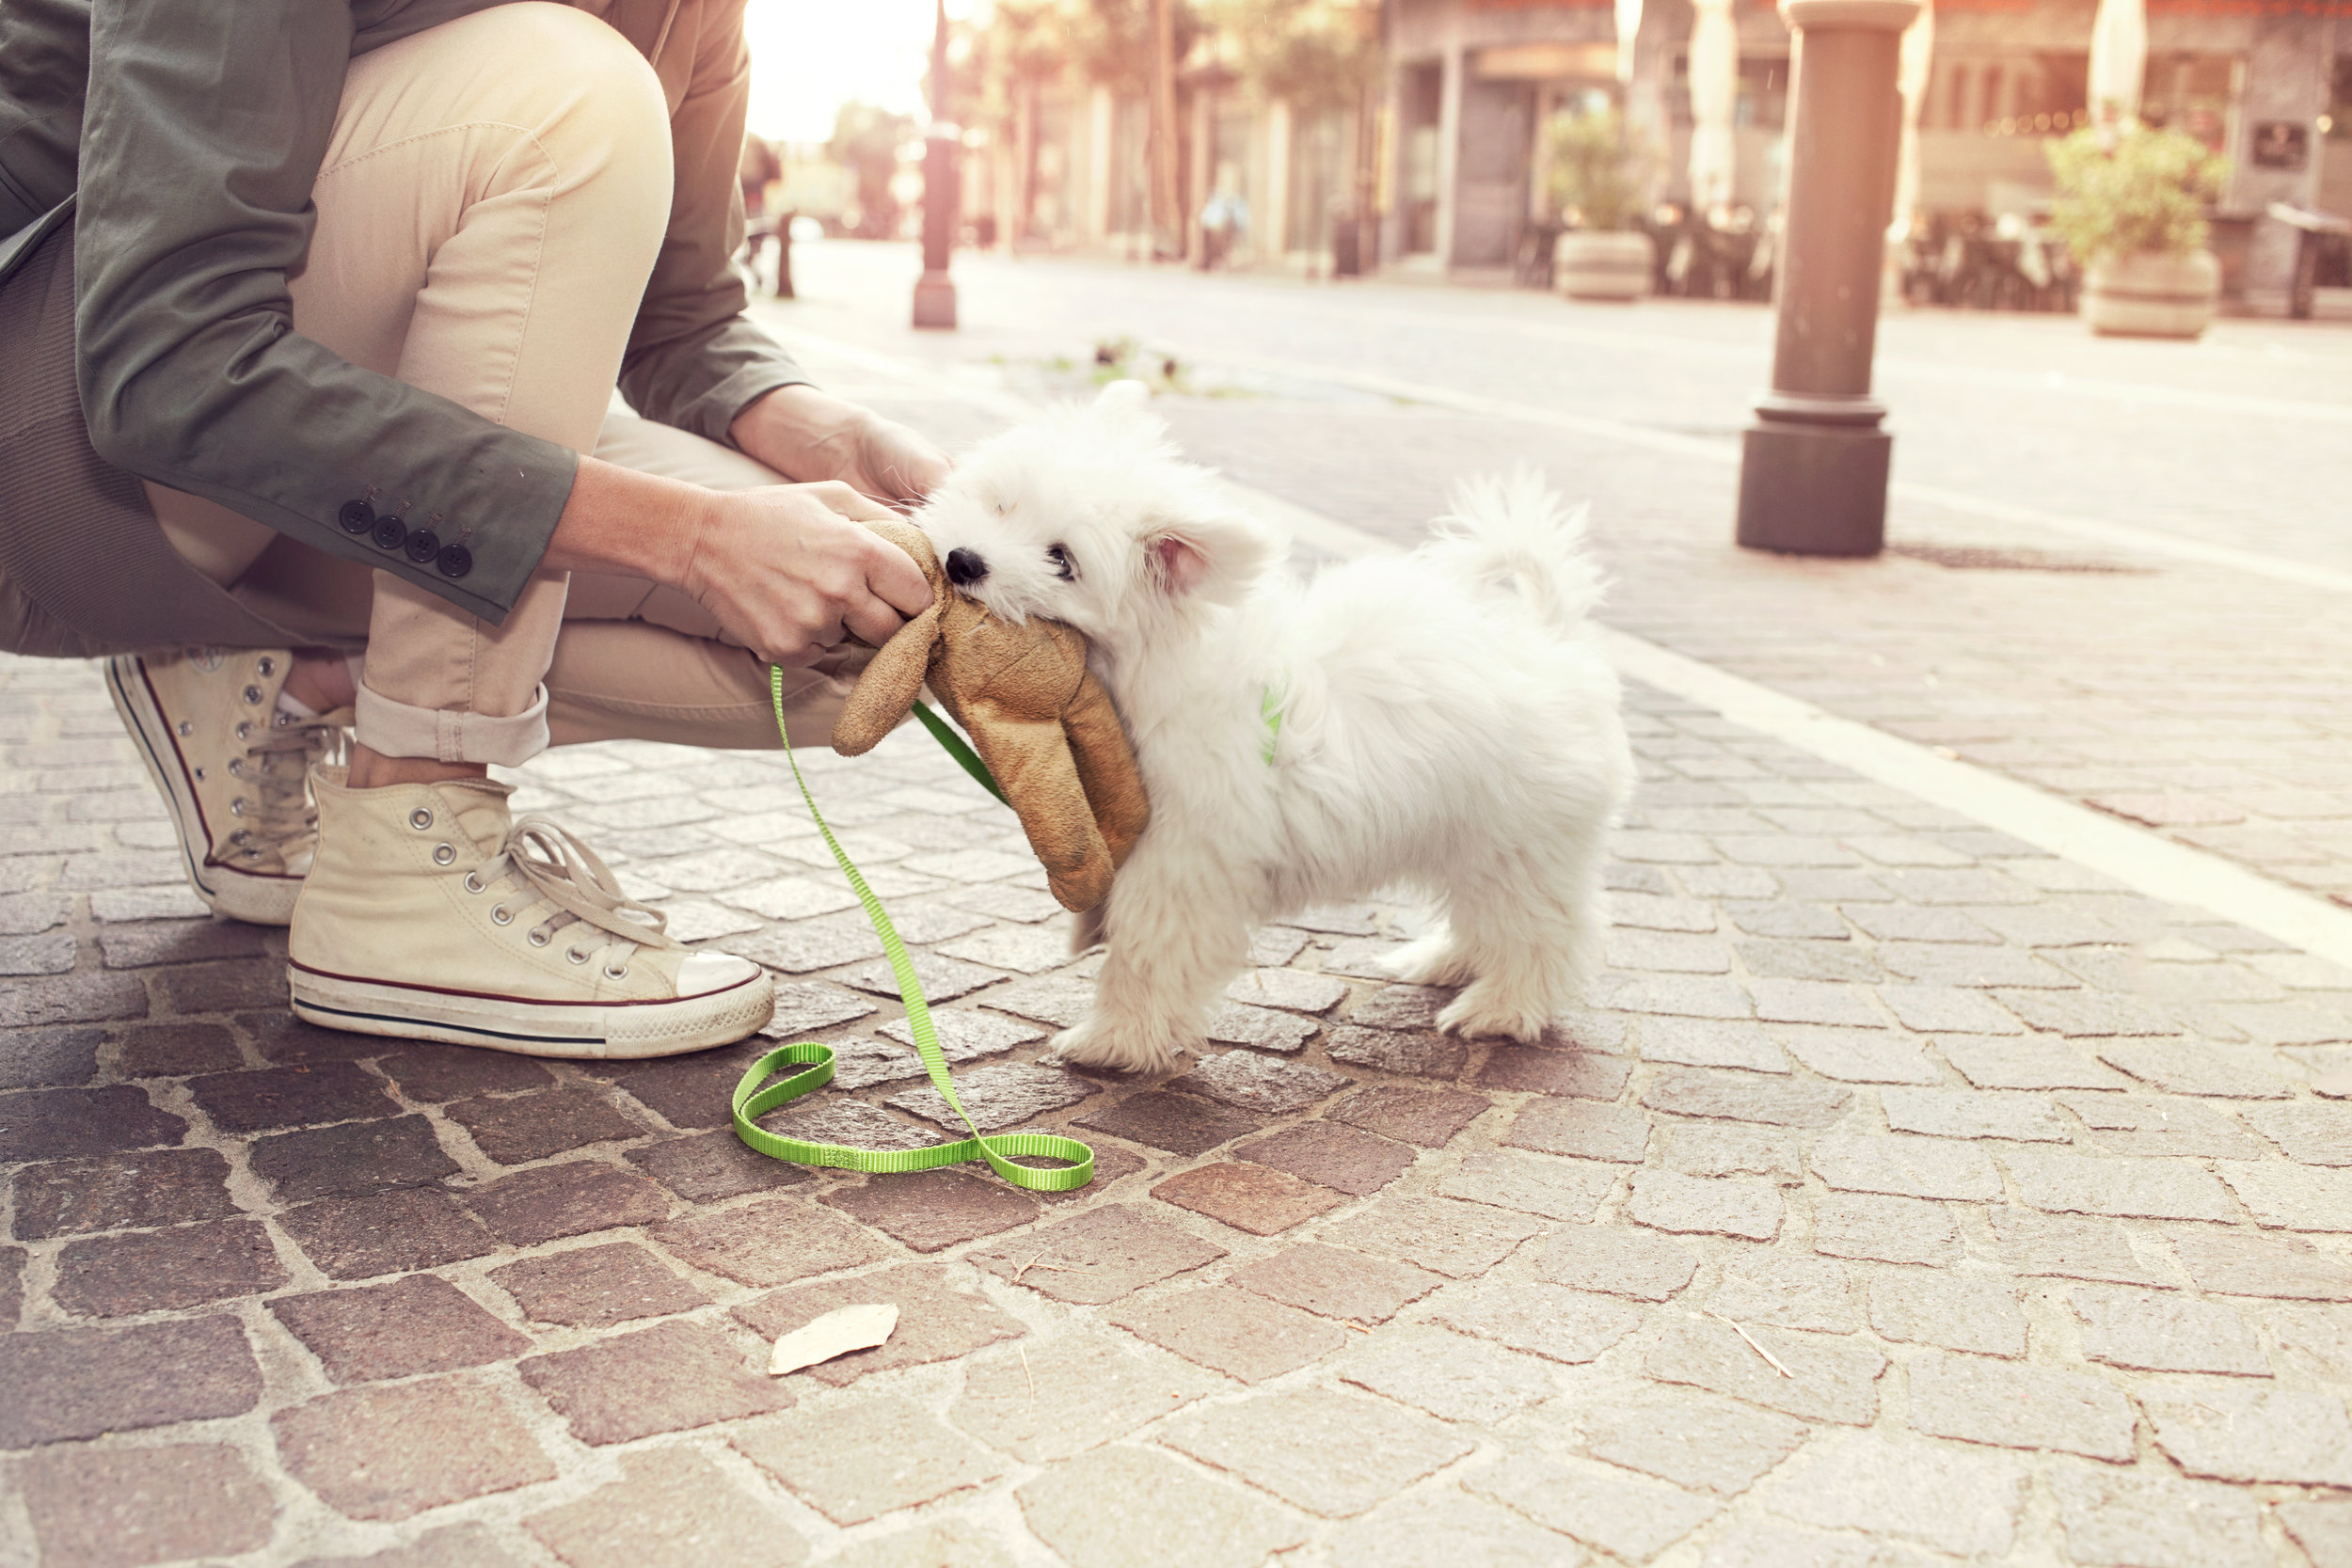 A puppy and guardian just hanging out on a street corner, playing with a toy and watching the world go by. Photo credit: Cristina Conti, Adobe Stock